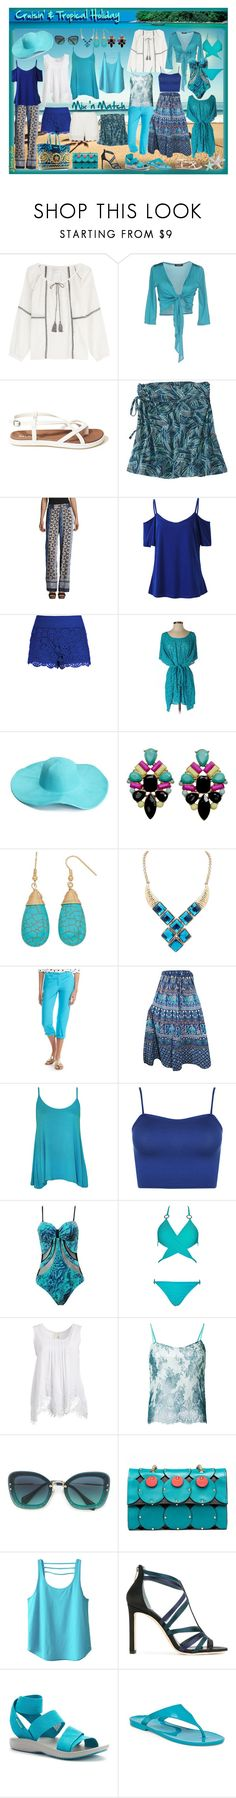 """""""Cruise & Tropical Holiday Capsule"""" by jj-loves-colour ❤ liked on Polyvore featuring Velvet, Le Fate, Hollister Co., Title Nine, Alyx, City Chic, Becca, WithChic, Crown & Ivy and WearAll"""